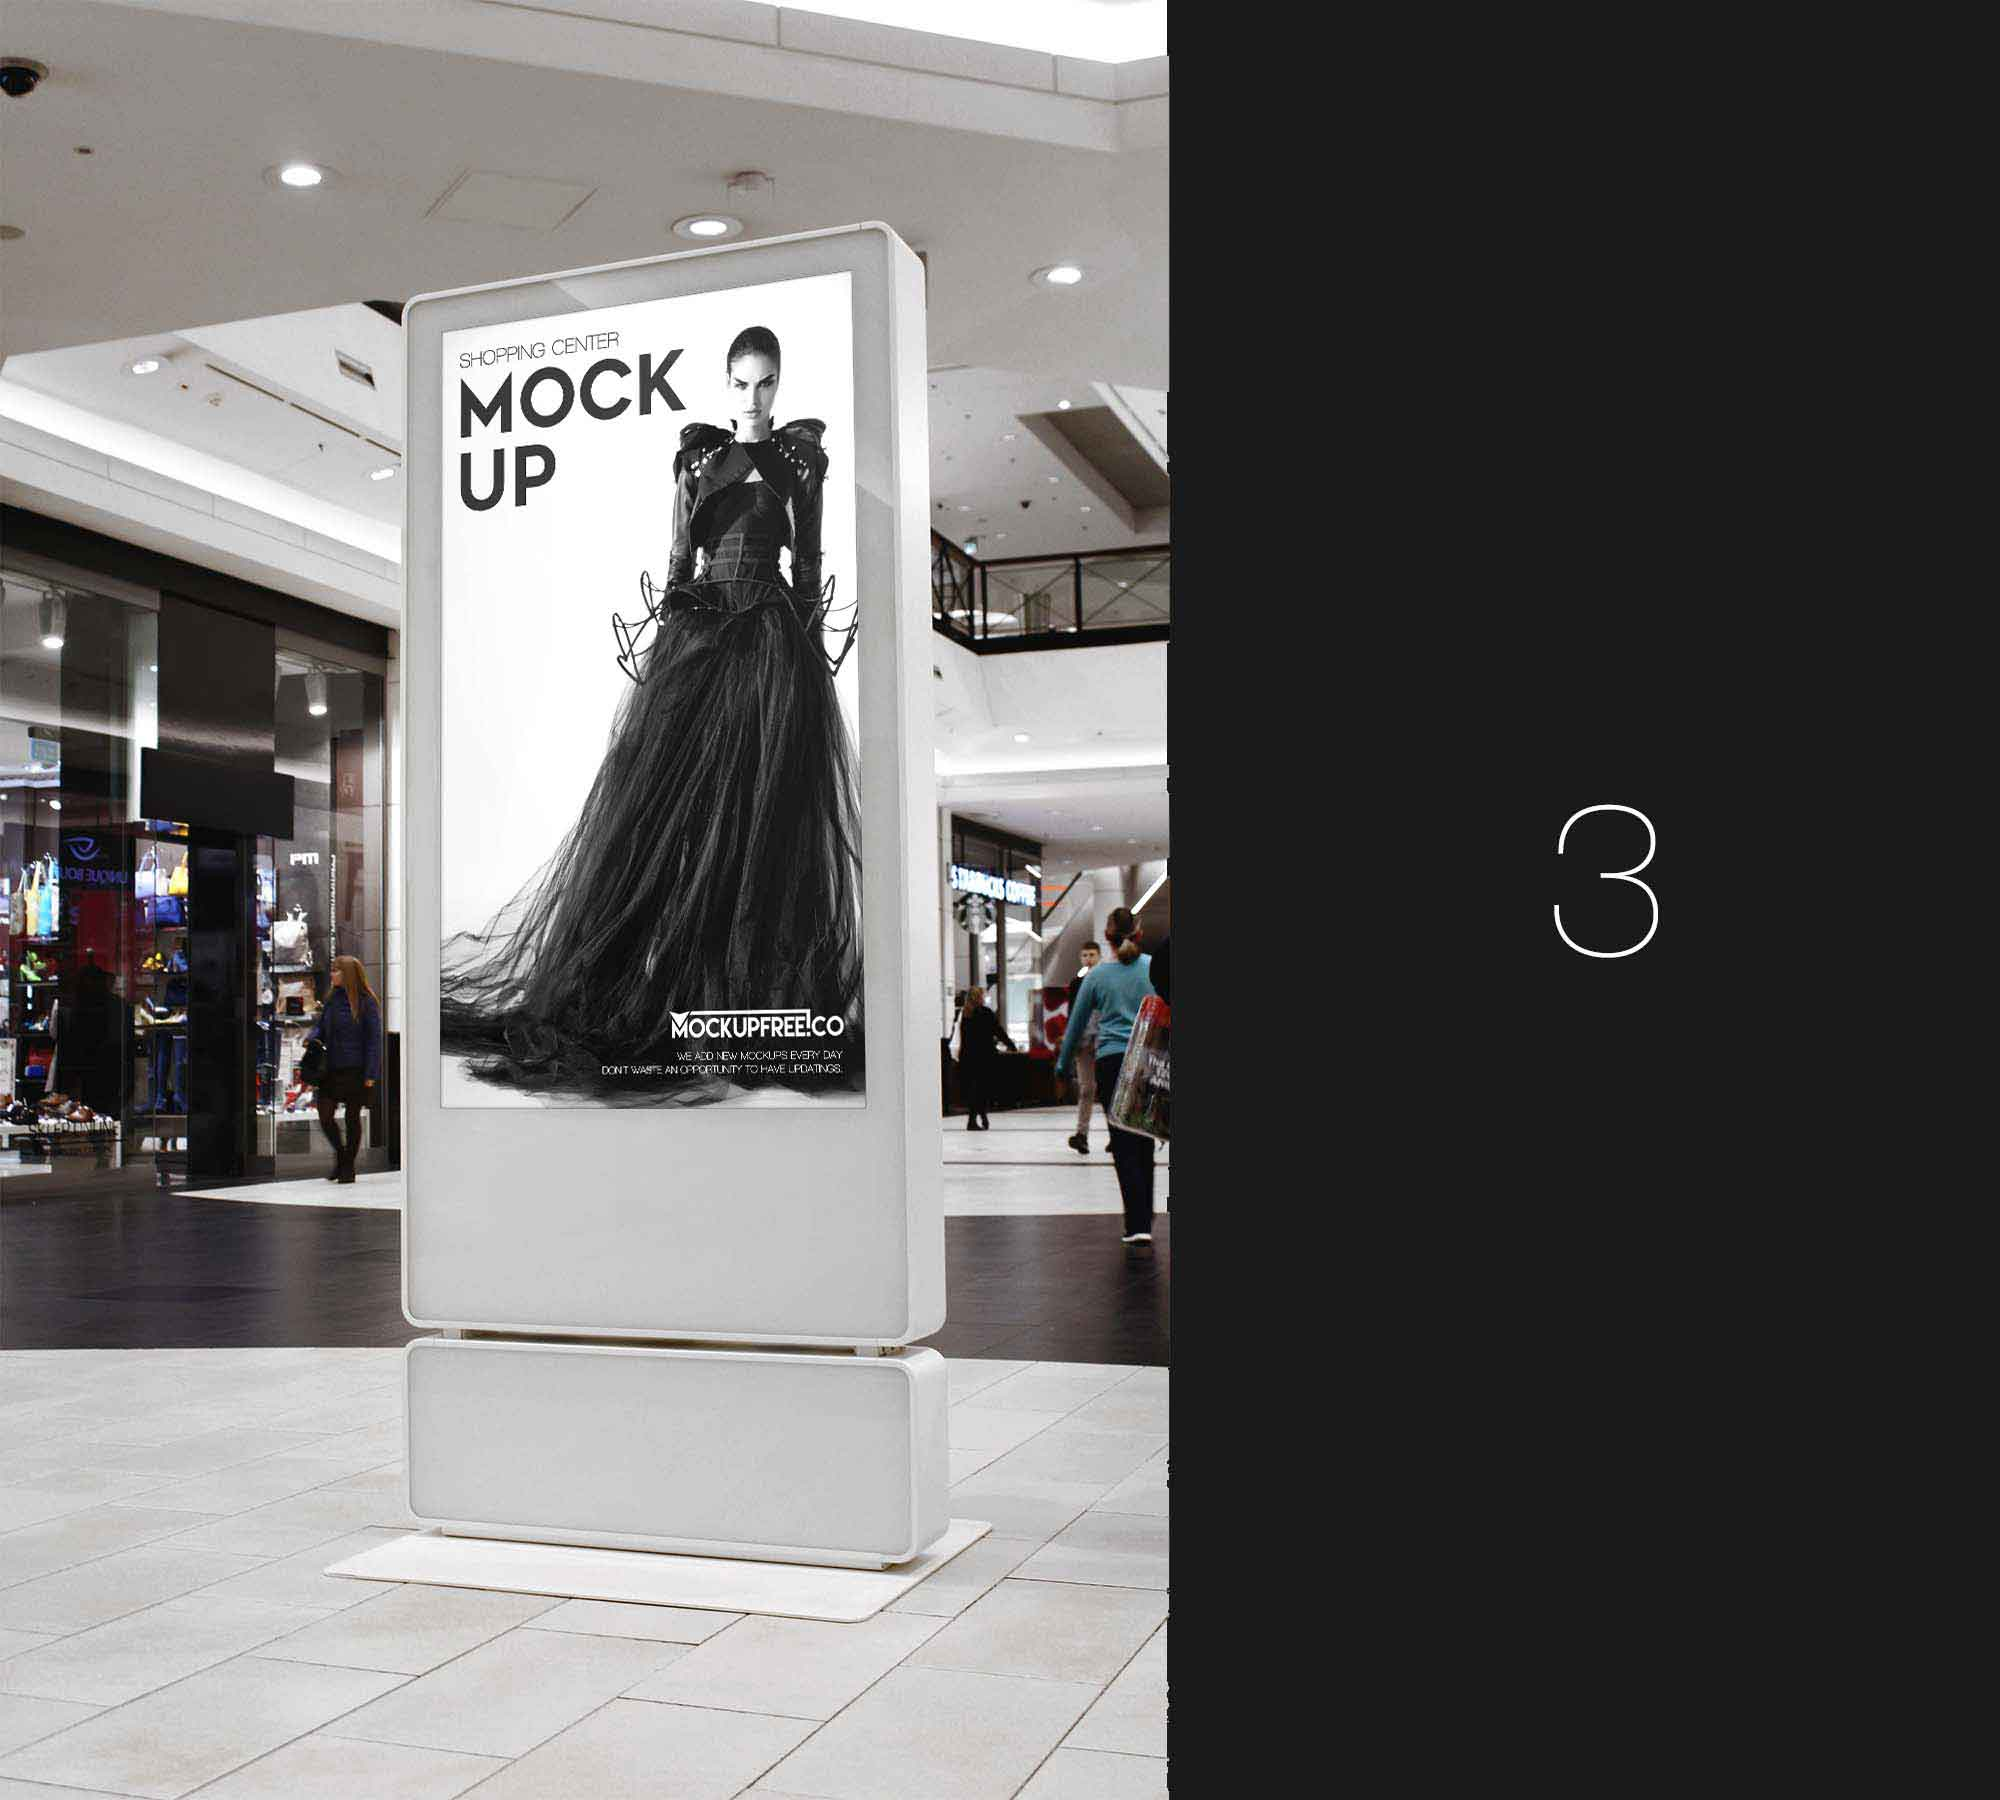 Shopping Center Billboard Mockup 3